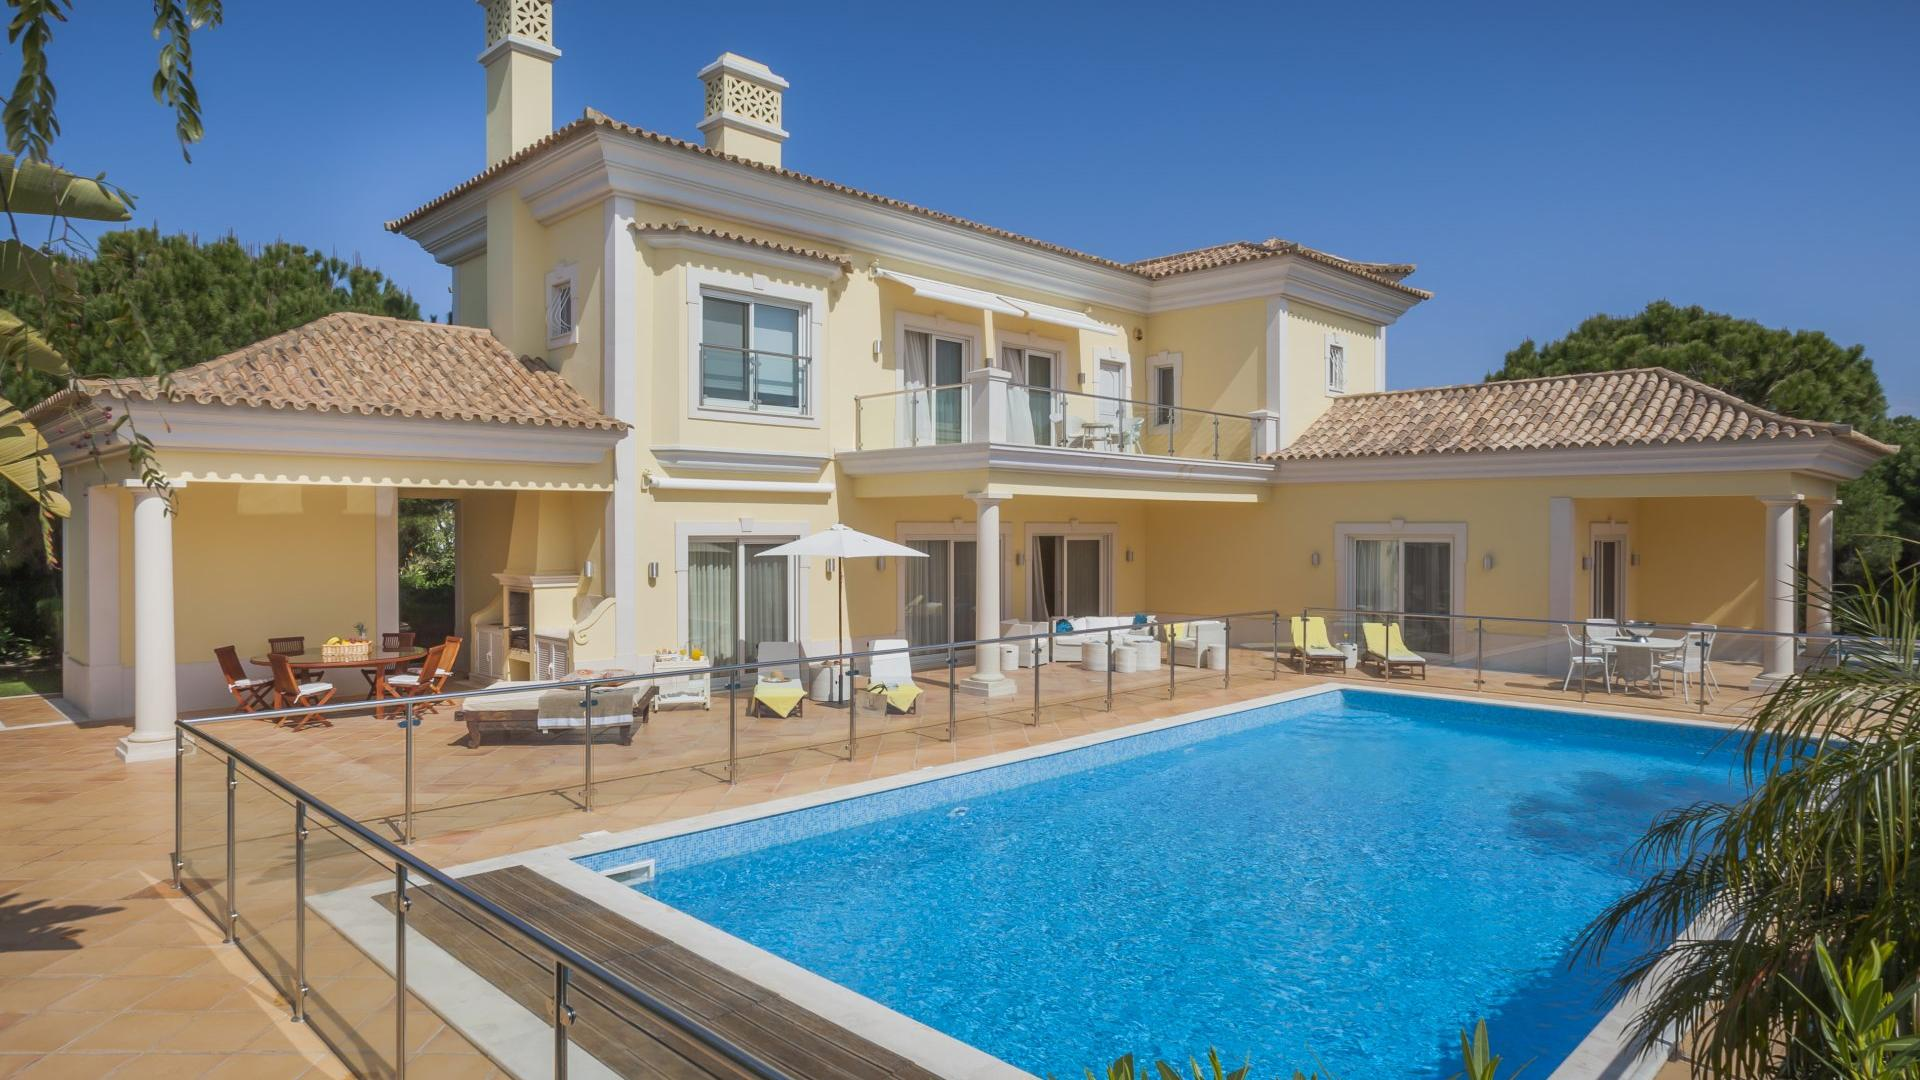 Villa Dakota - Quinta do Lago, Algarve - _MS_2976.jpg